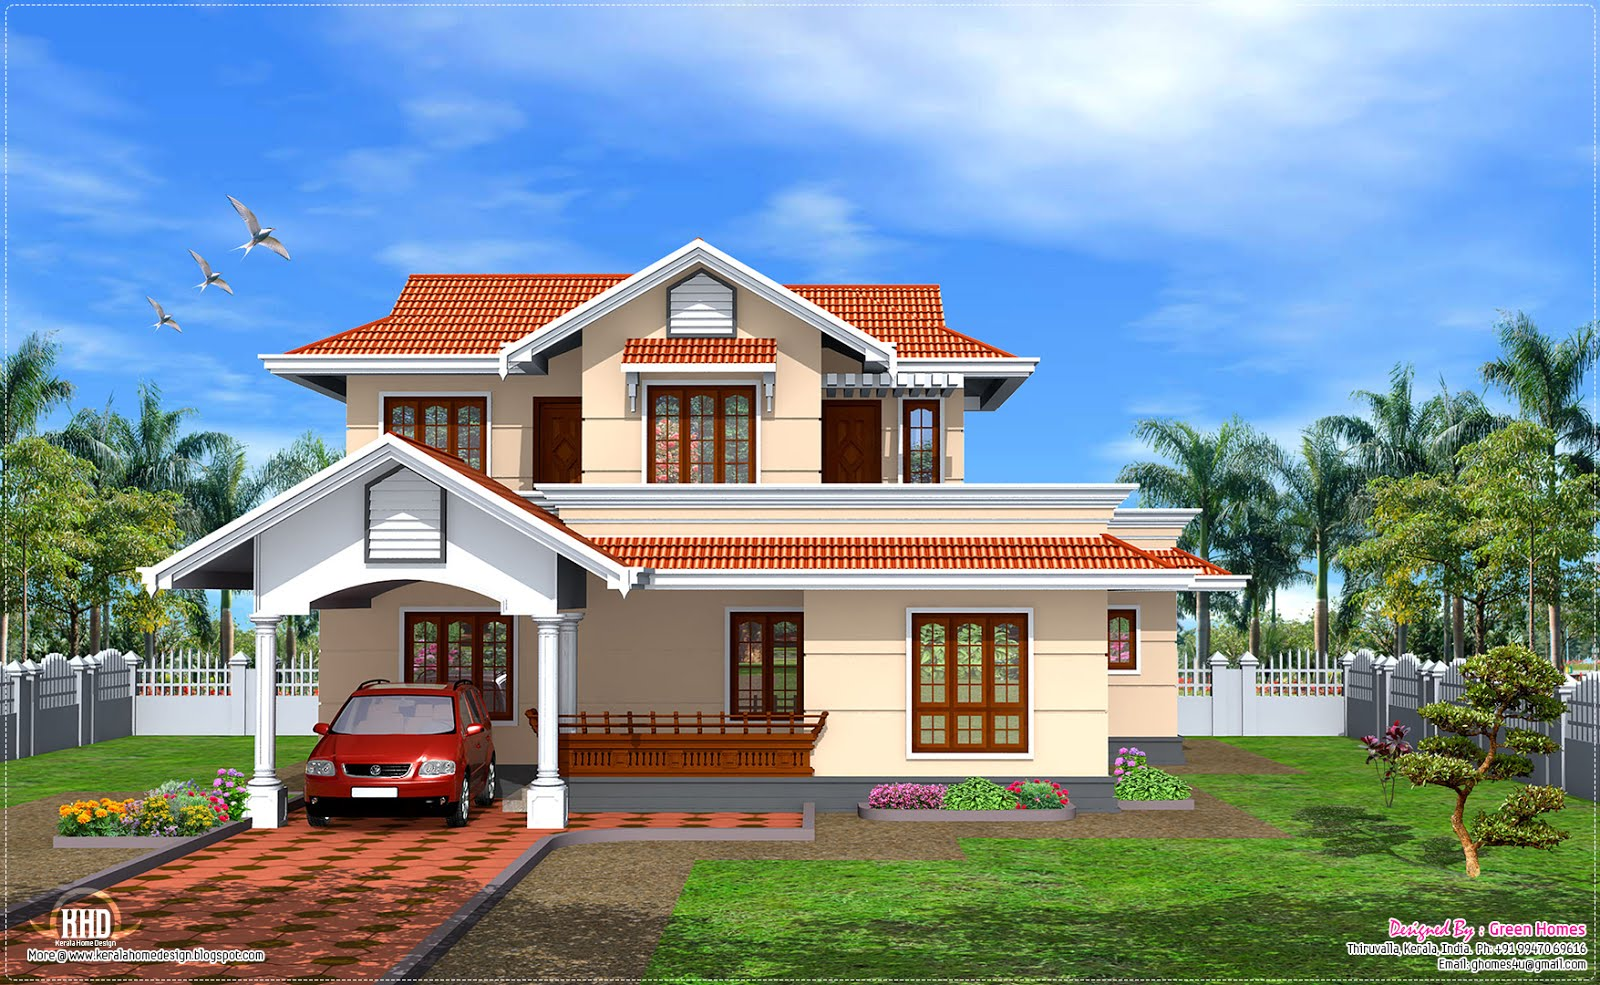 Kerala Model 1900 Home Design House Design Plans: house deaigns